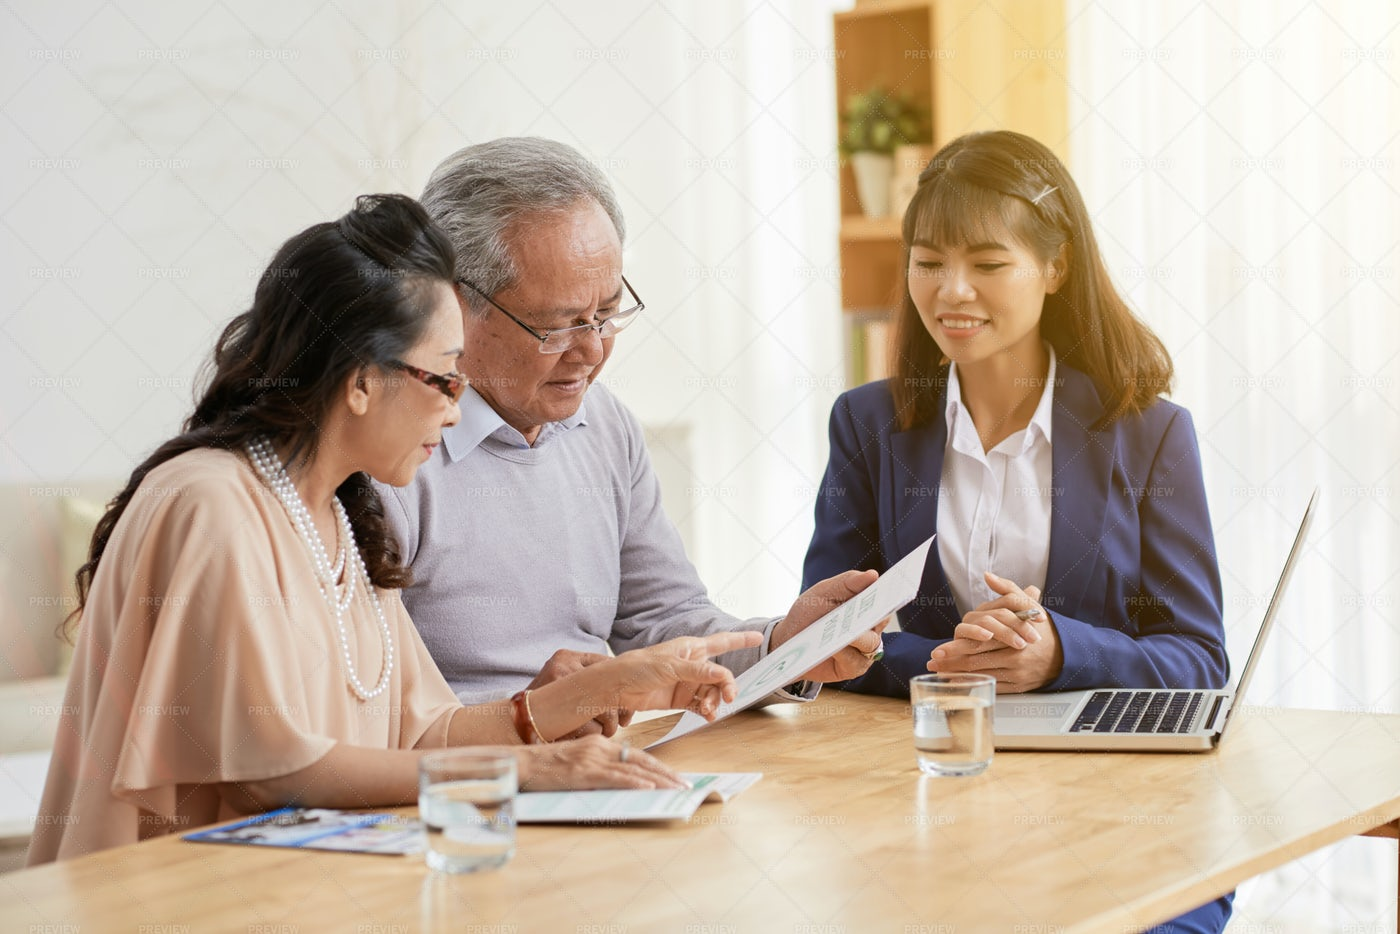 Studying Contract With...: Stock Photos